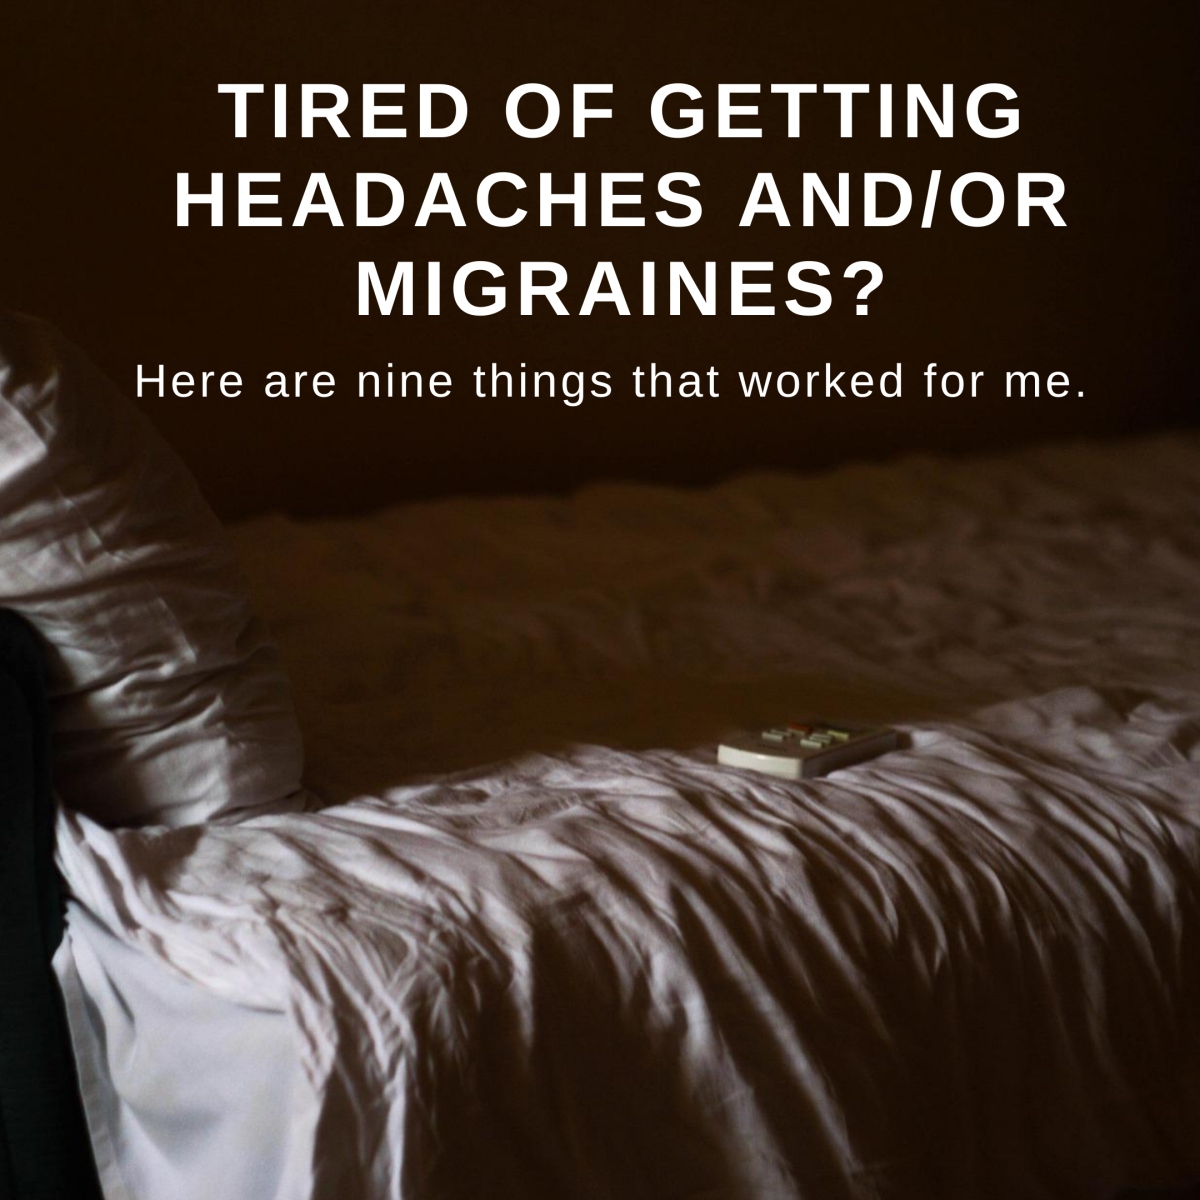 As someone who has suffered from both headaches and migraines, here are some tips and tricks that worked for me.